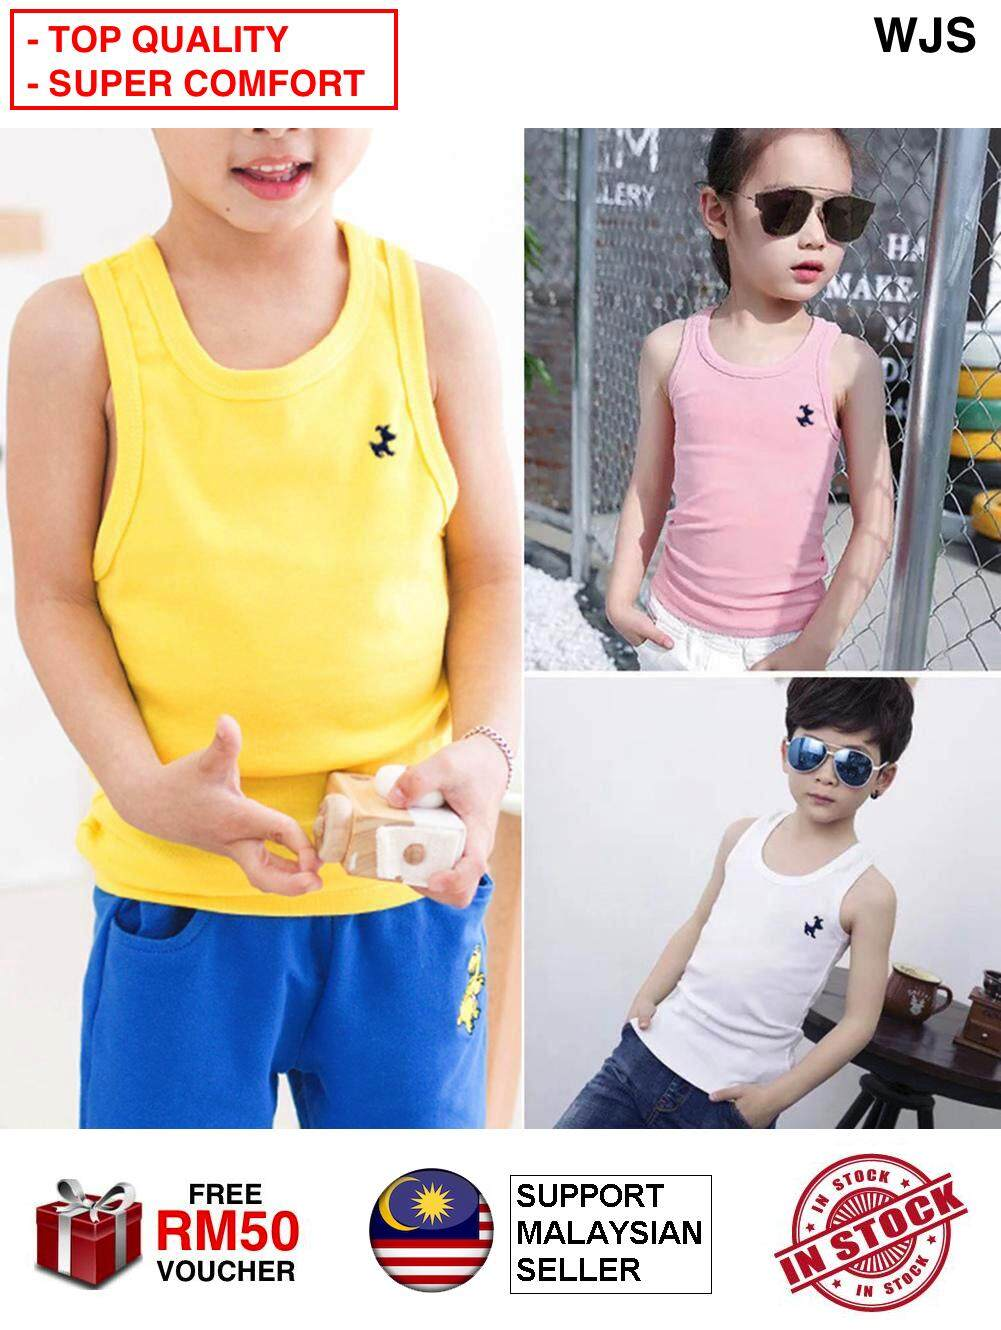 (SUPER COMFORTABLE) WJS Comfortable Cotton Kids Singlet T-shirt Boy Girls Tops Colored Kids Underwear Model Baby Camisole Toddler Undershirt Children Singlets Toddler Cloth Clothing MULTISIZE MULTICOLOR [FREE RM 50 VOUCHER]